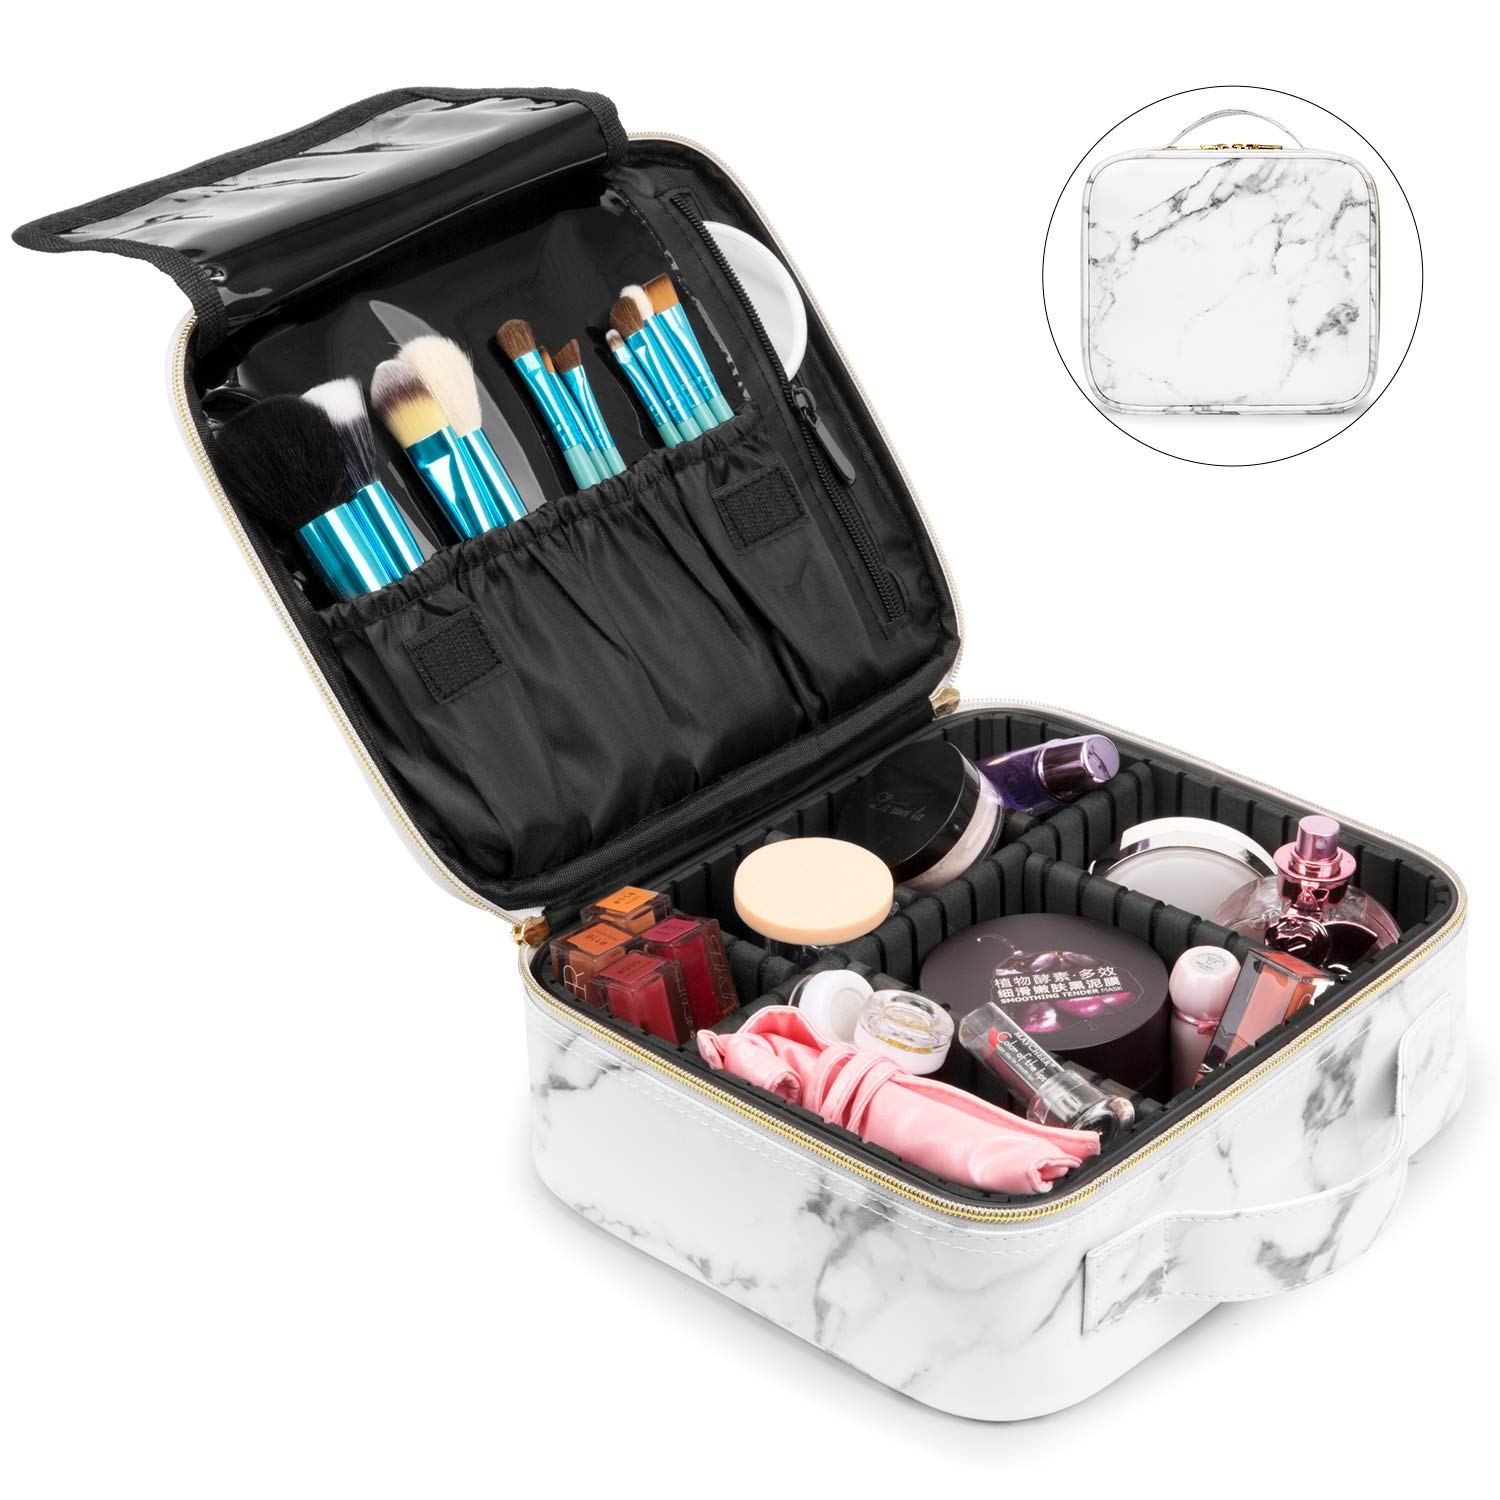 NiceEbag Makeup Bag for Women Large Cosmetic Bag Leather Train Case Professional Makeup Case Cute Travel Makeup Organizer with Brush Section & Removable Dividers for Cosmetics Make Up Tools, Marble